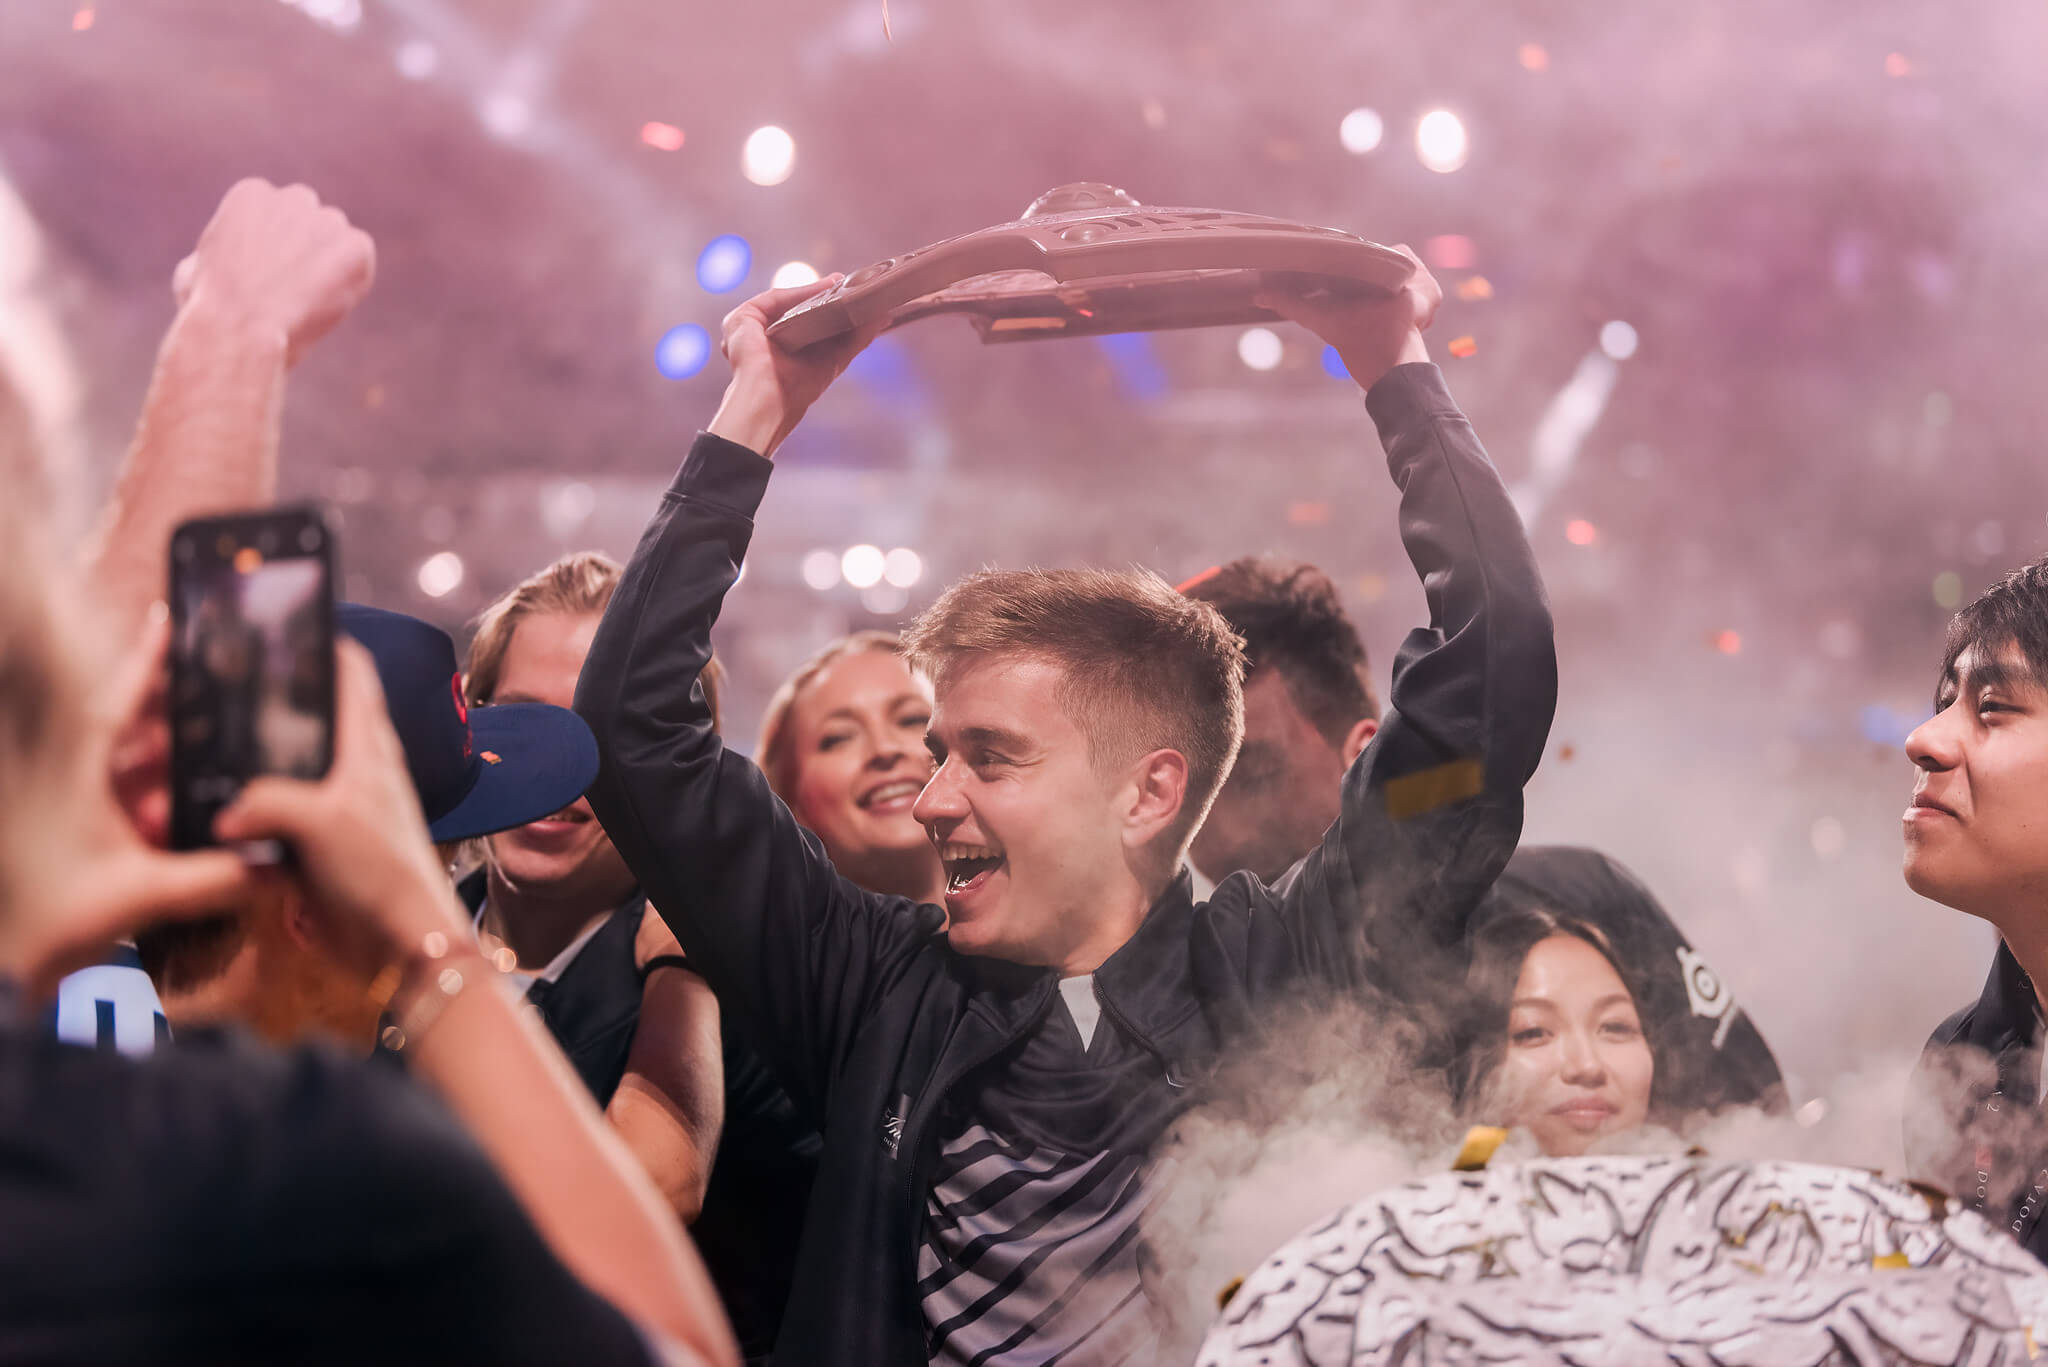 OG becomes the first Dota 2 team to score back-to-back wins